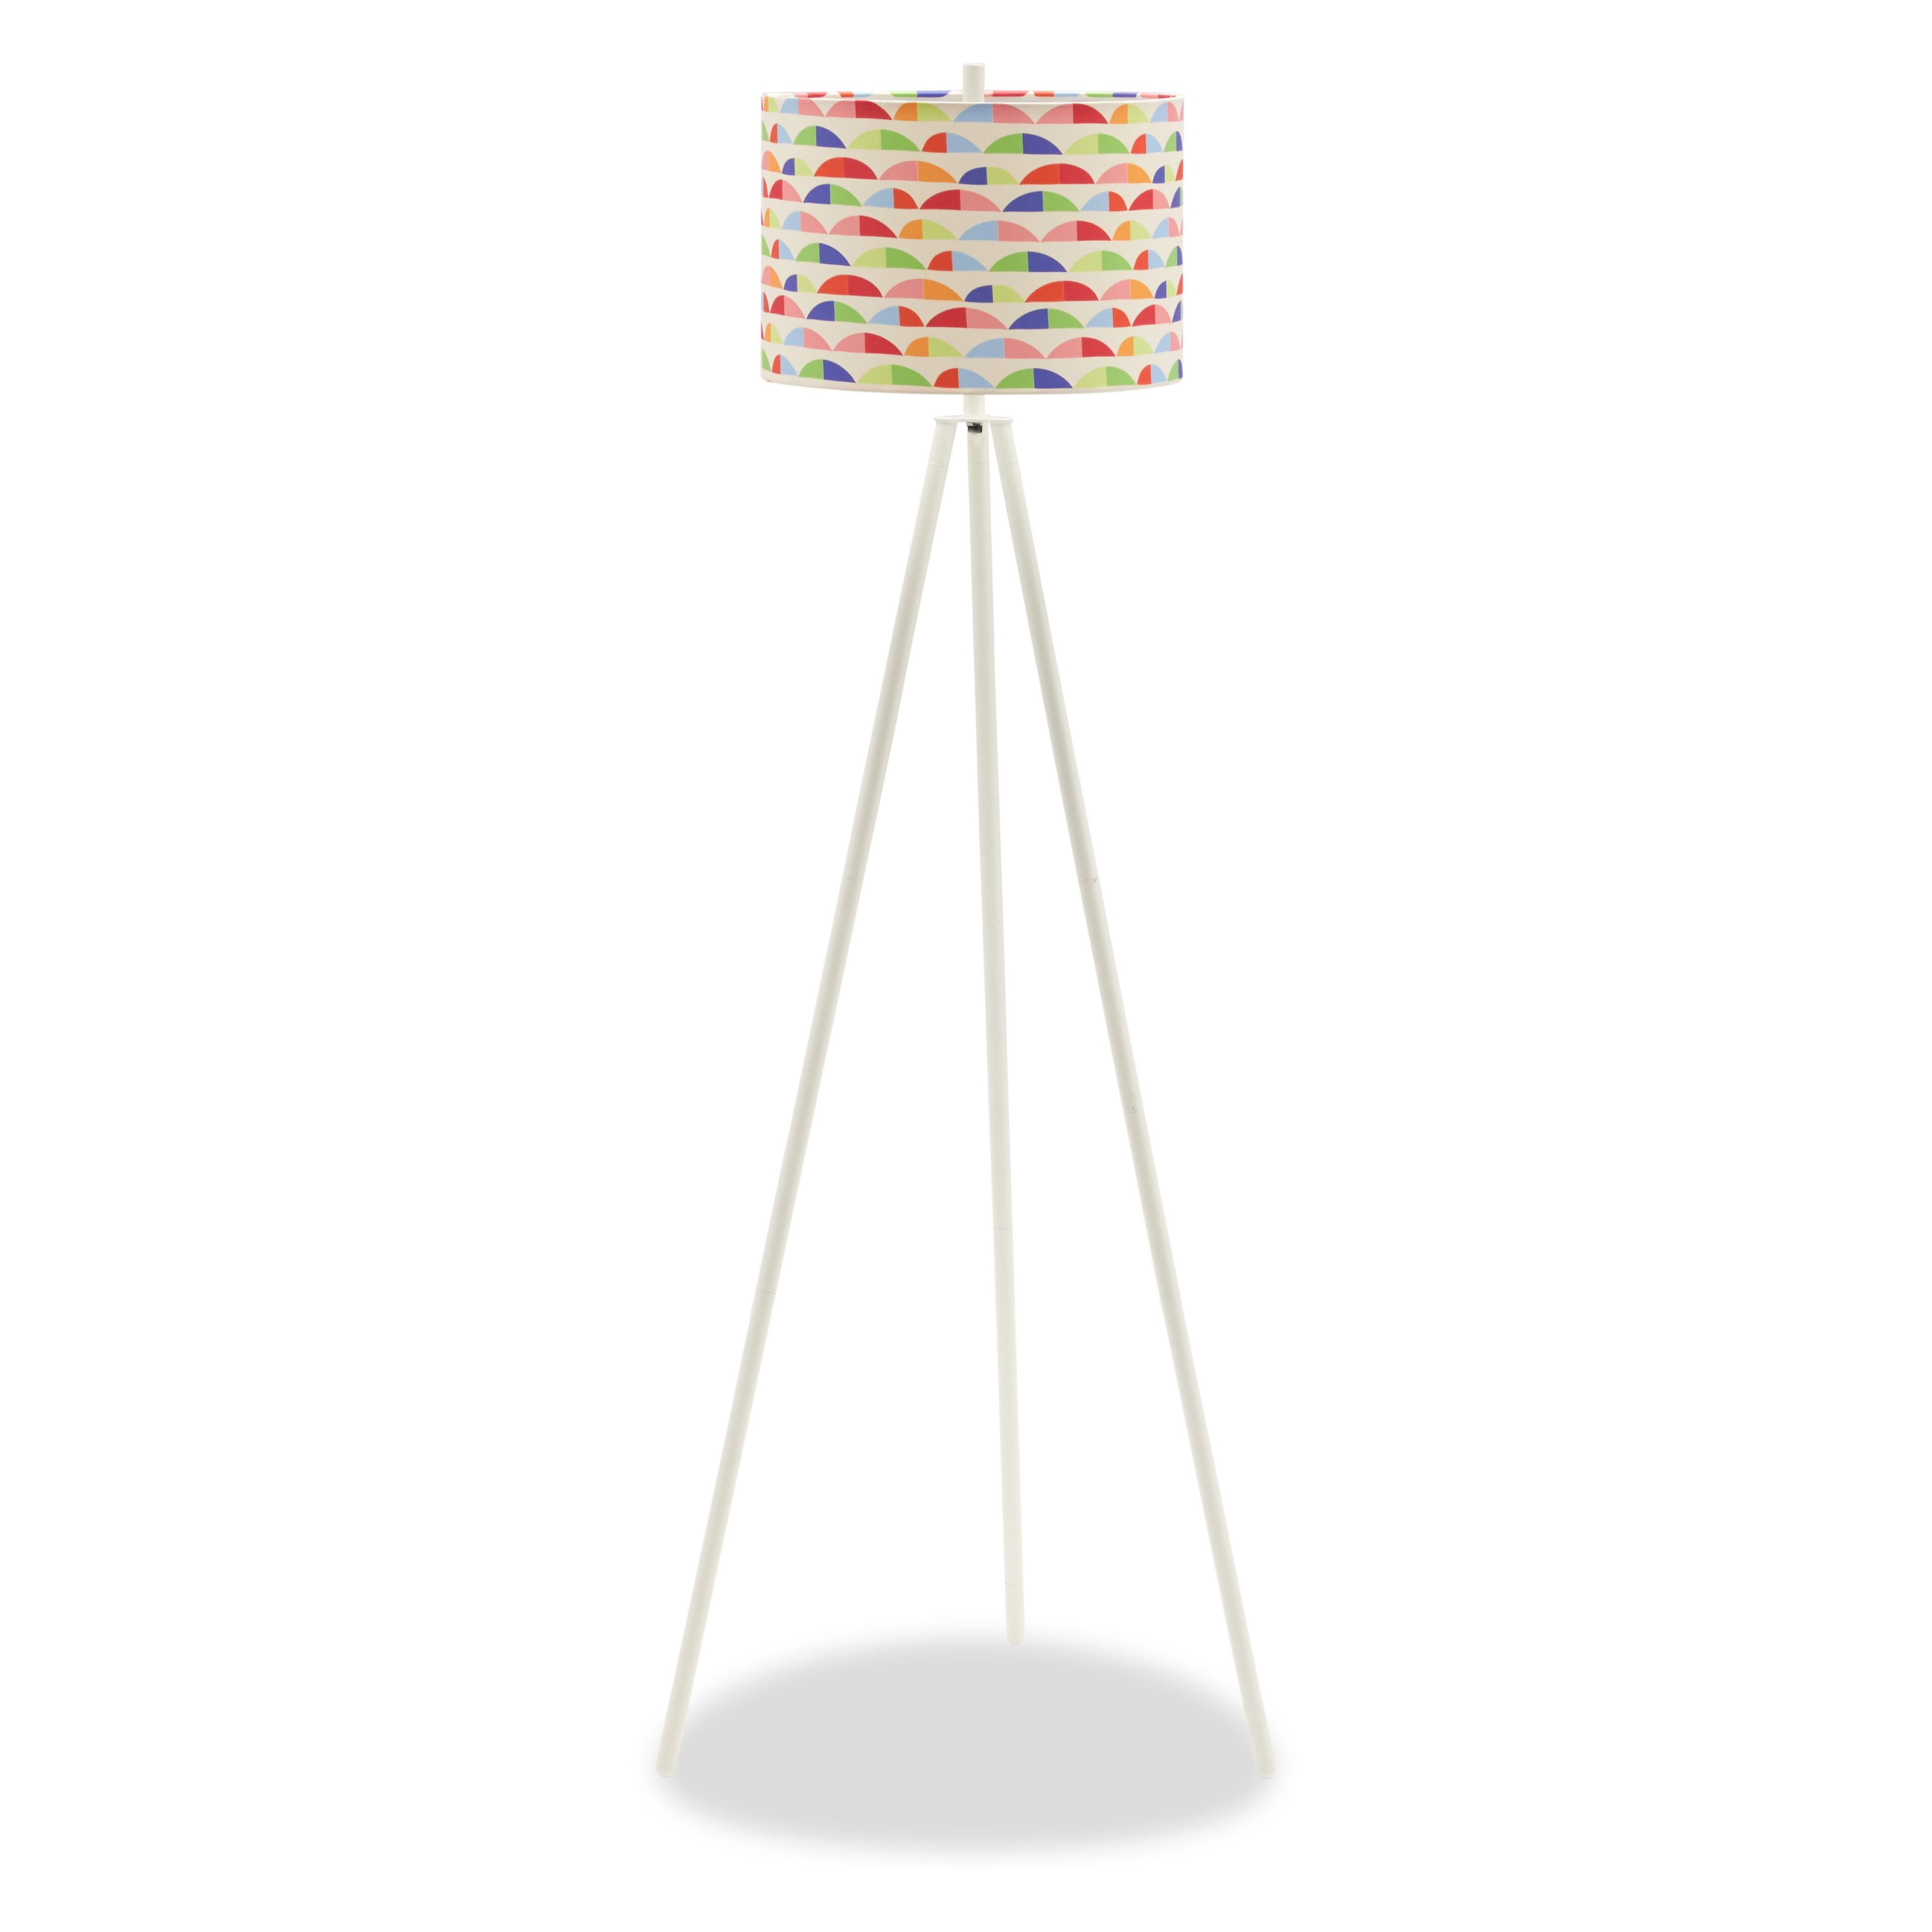 Home in 2020 Tripod floor lamps, Pink abstract, Stylish